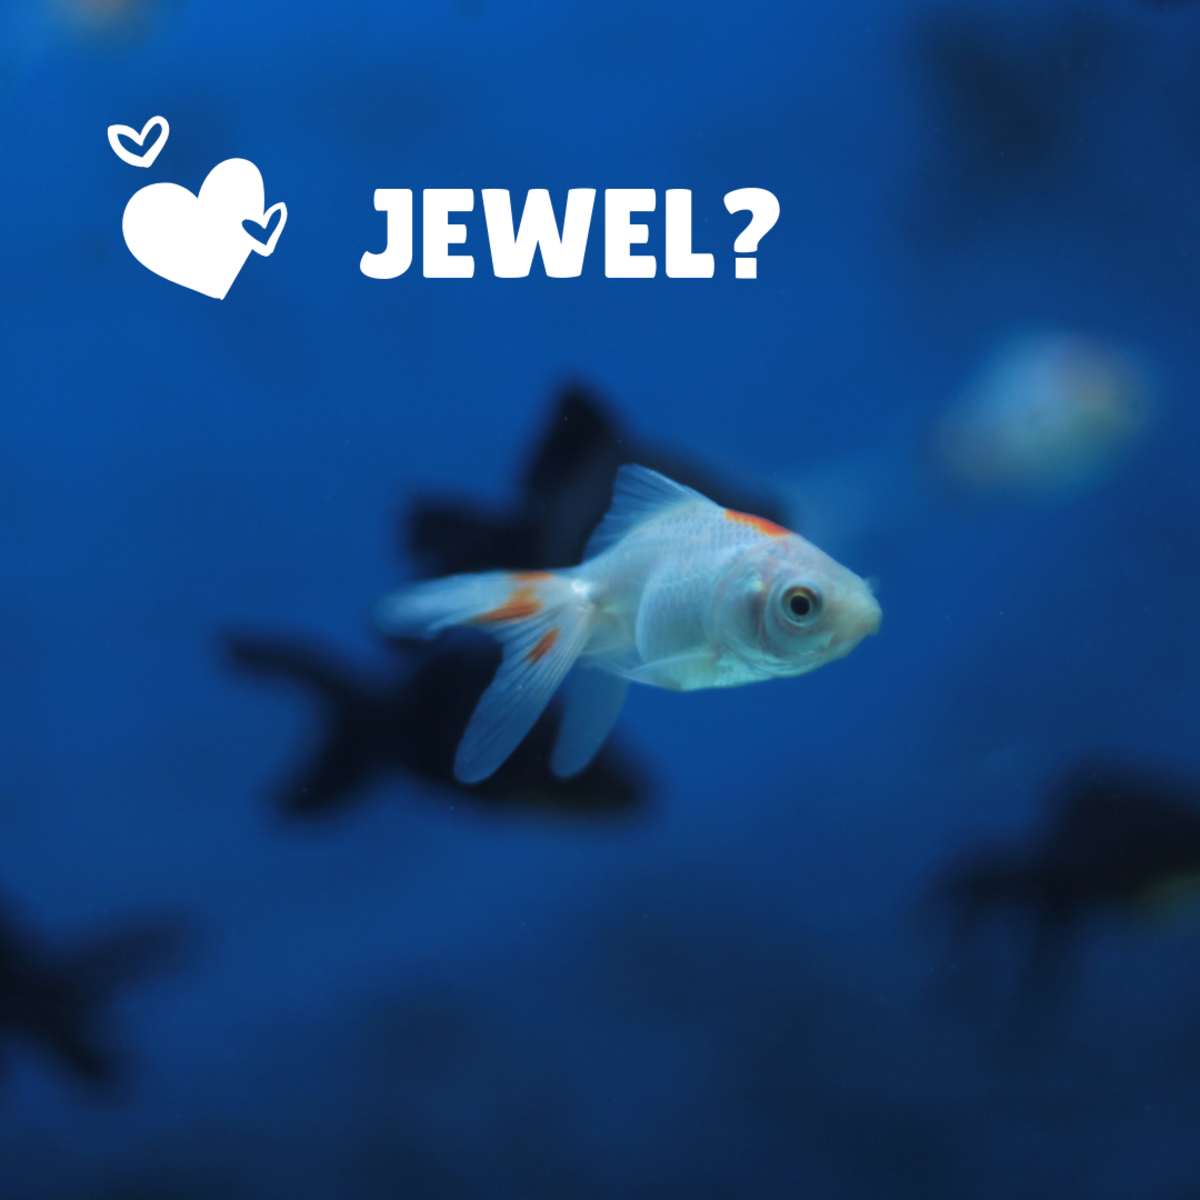 Is your white goldfish a Jewel?